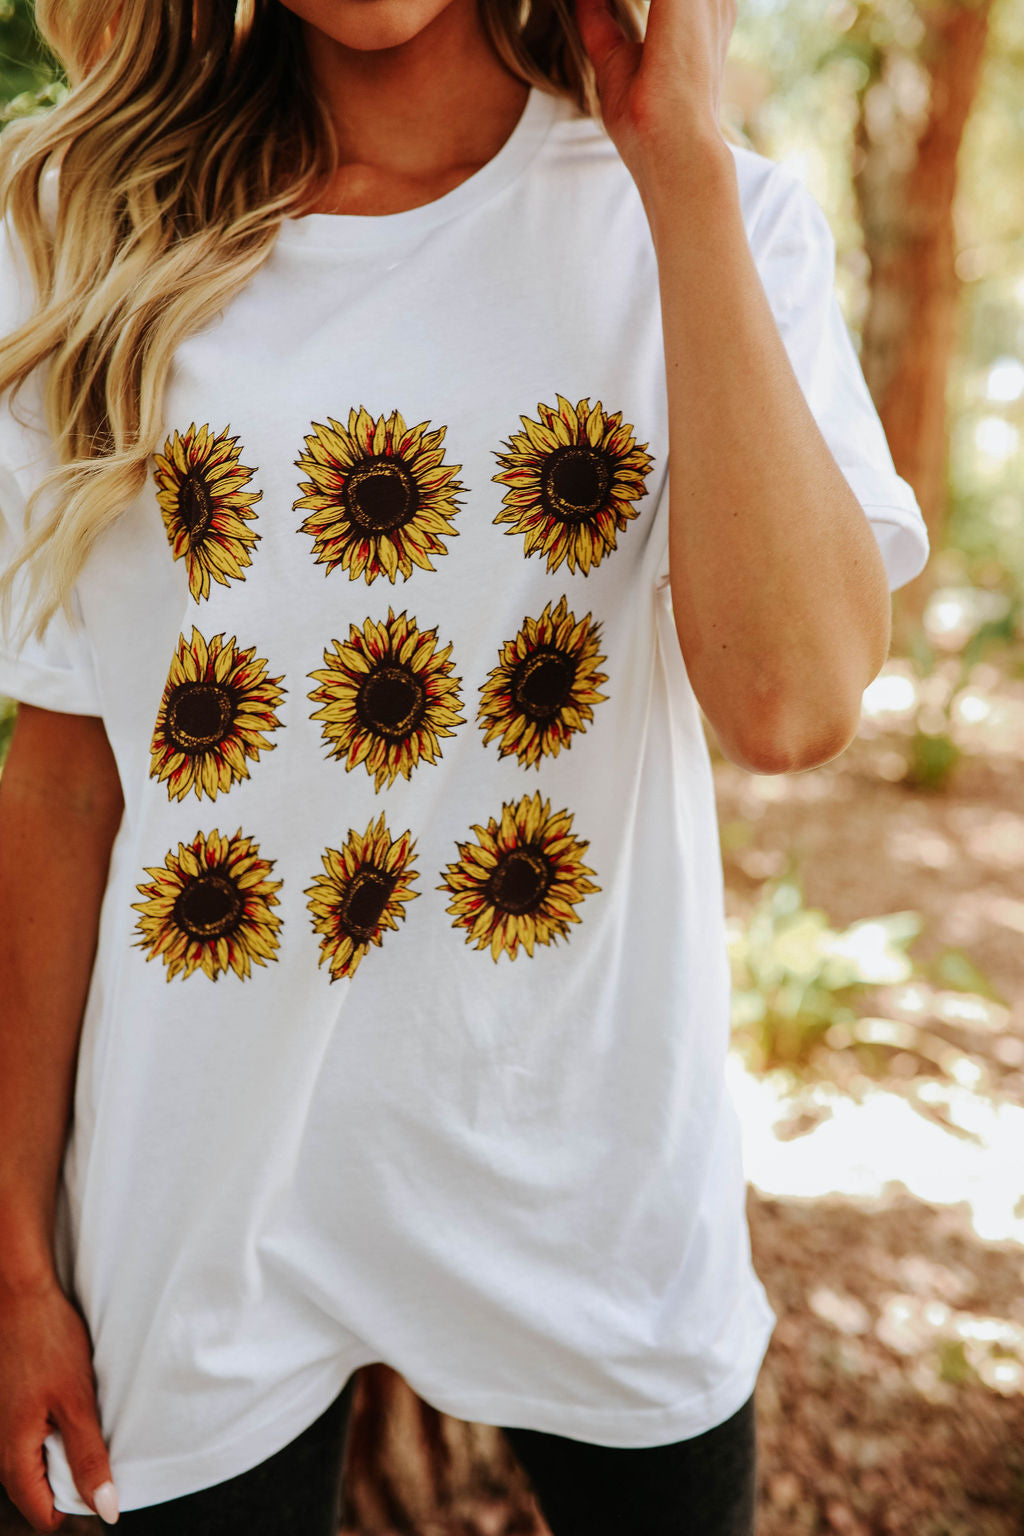 THE OVERSIZED SUNFLOWER GRAPHIC TEE IN WHITE